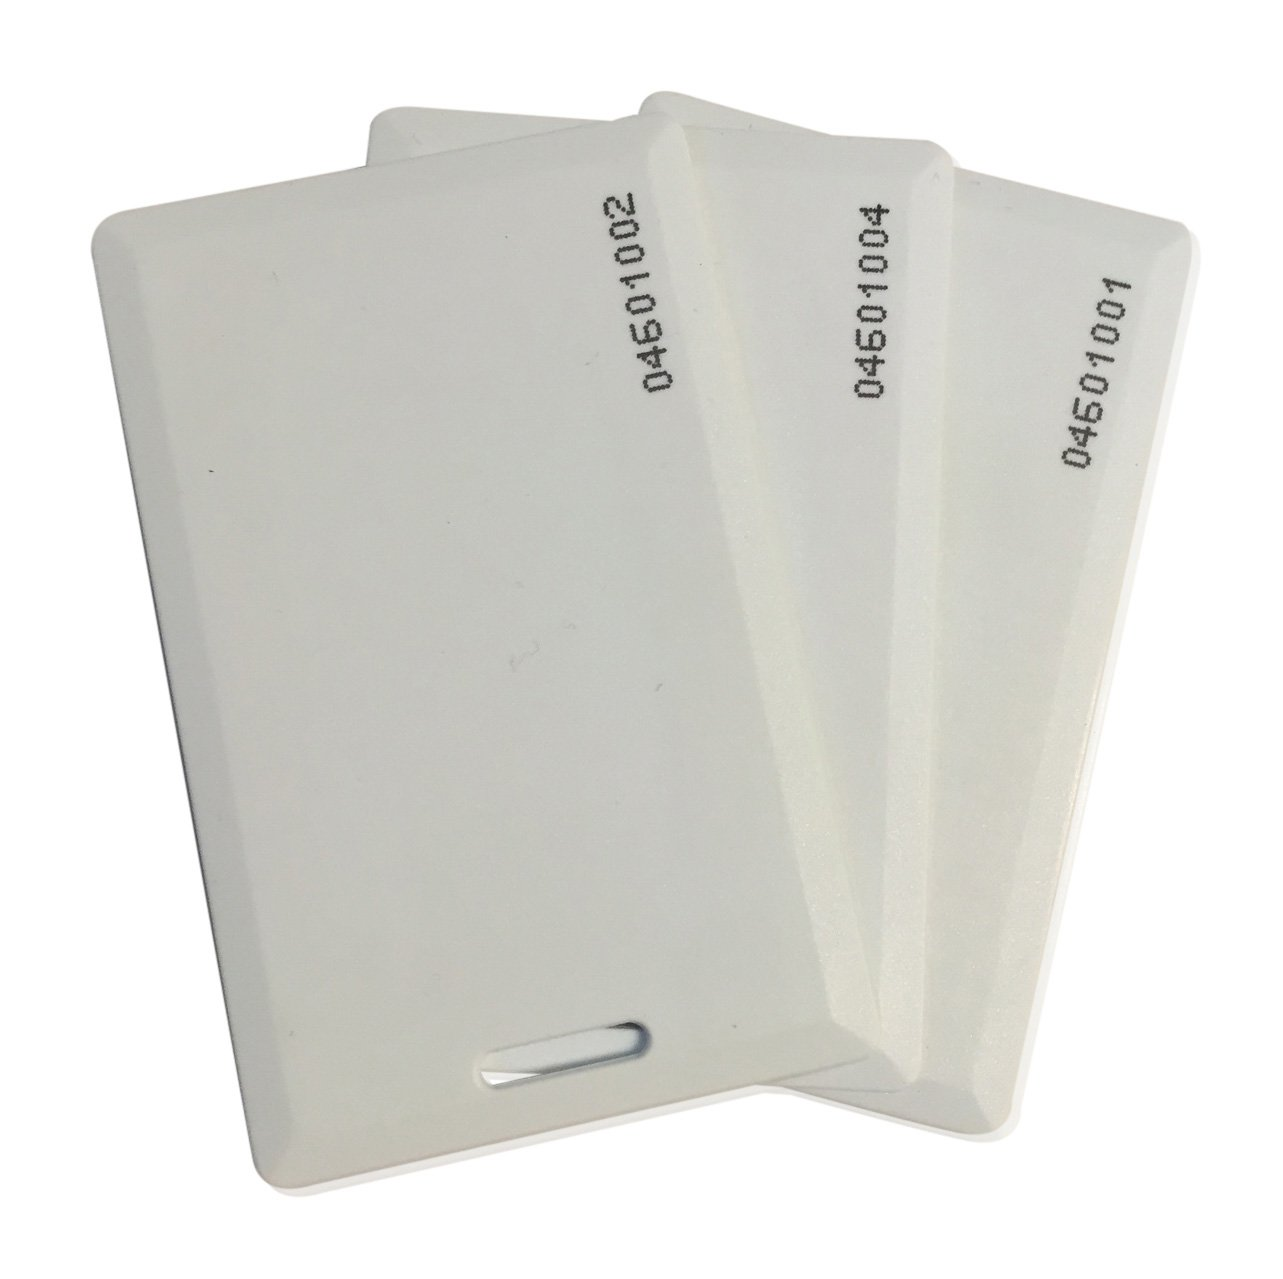 200 pcs 26 Bit Proximity Clamshell Weigand Prox Swipe Cards Compatable with ISOProx 1386 1326 H10301 format readers and systems. Works with the vast majority of access control systems